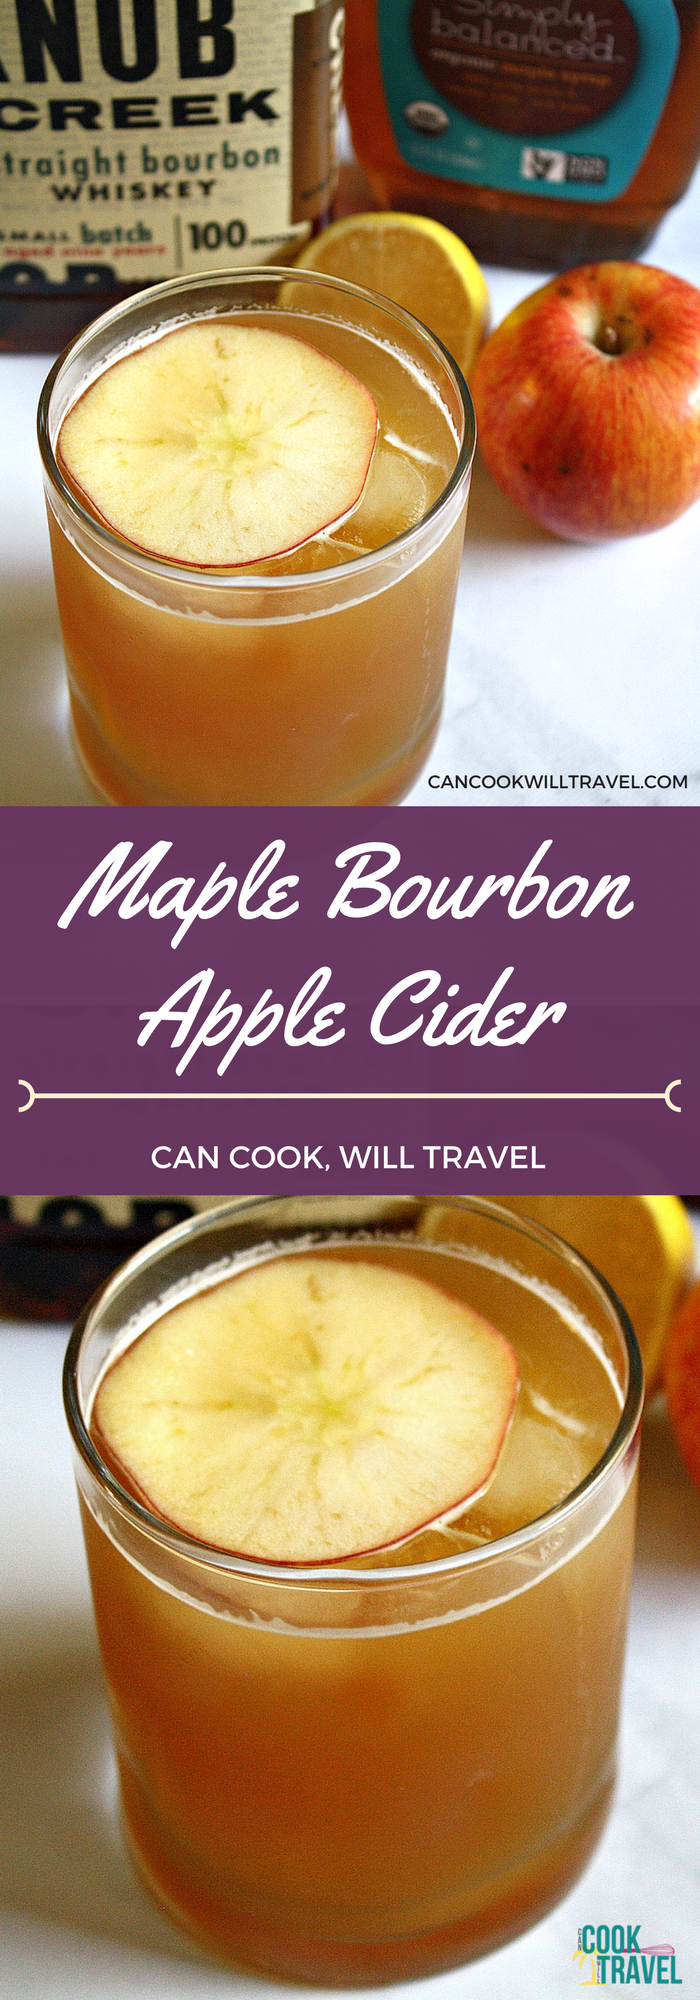 Maple Bourbon Apple Cider Cocktail - Can Cook, Will Travel